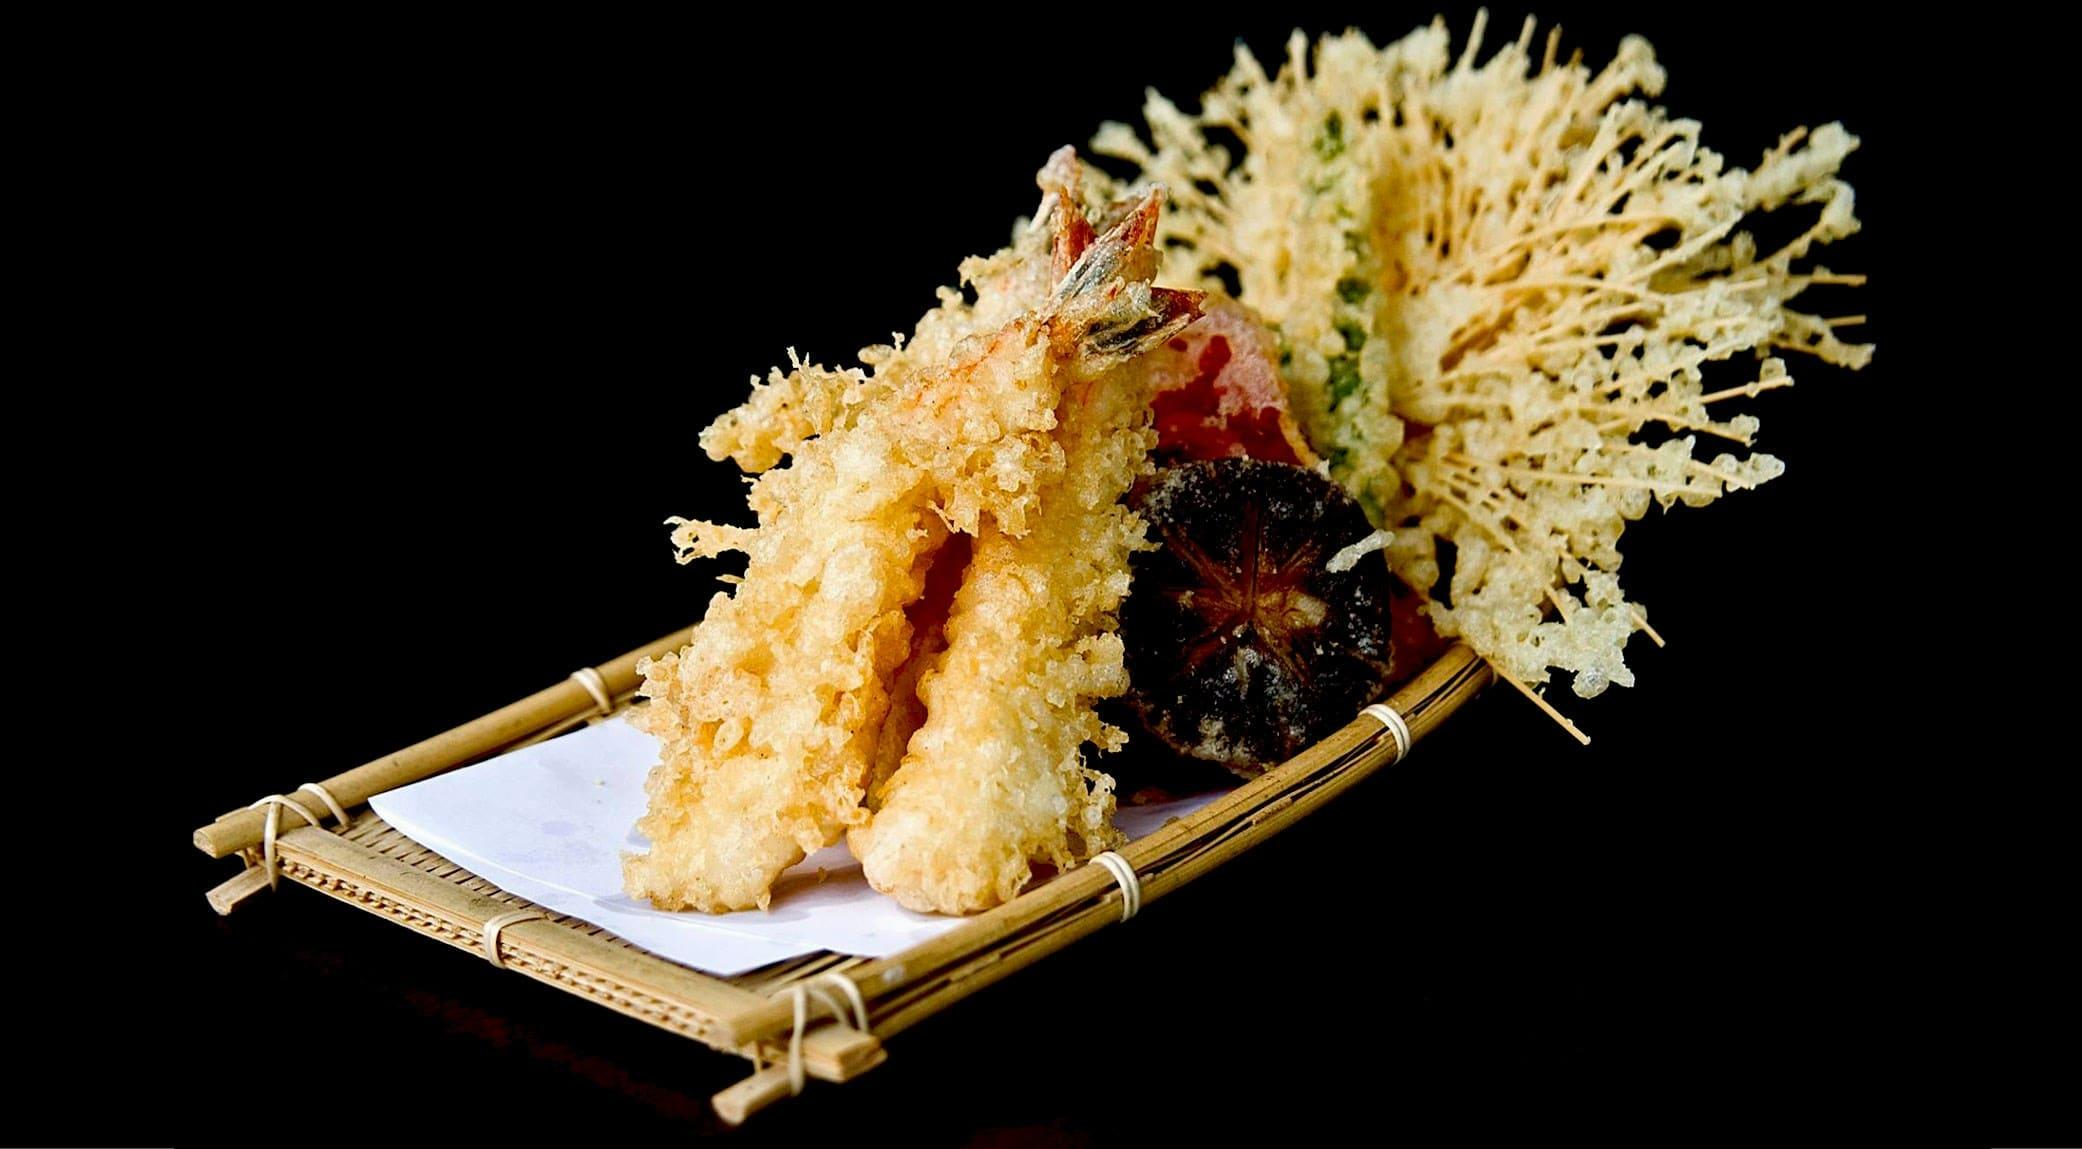 original_007-maido-finedininglovers-50worlds50bestrestaurant-latinoamerica.jpg